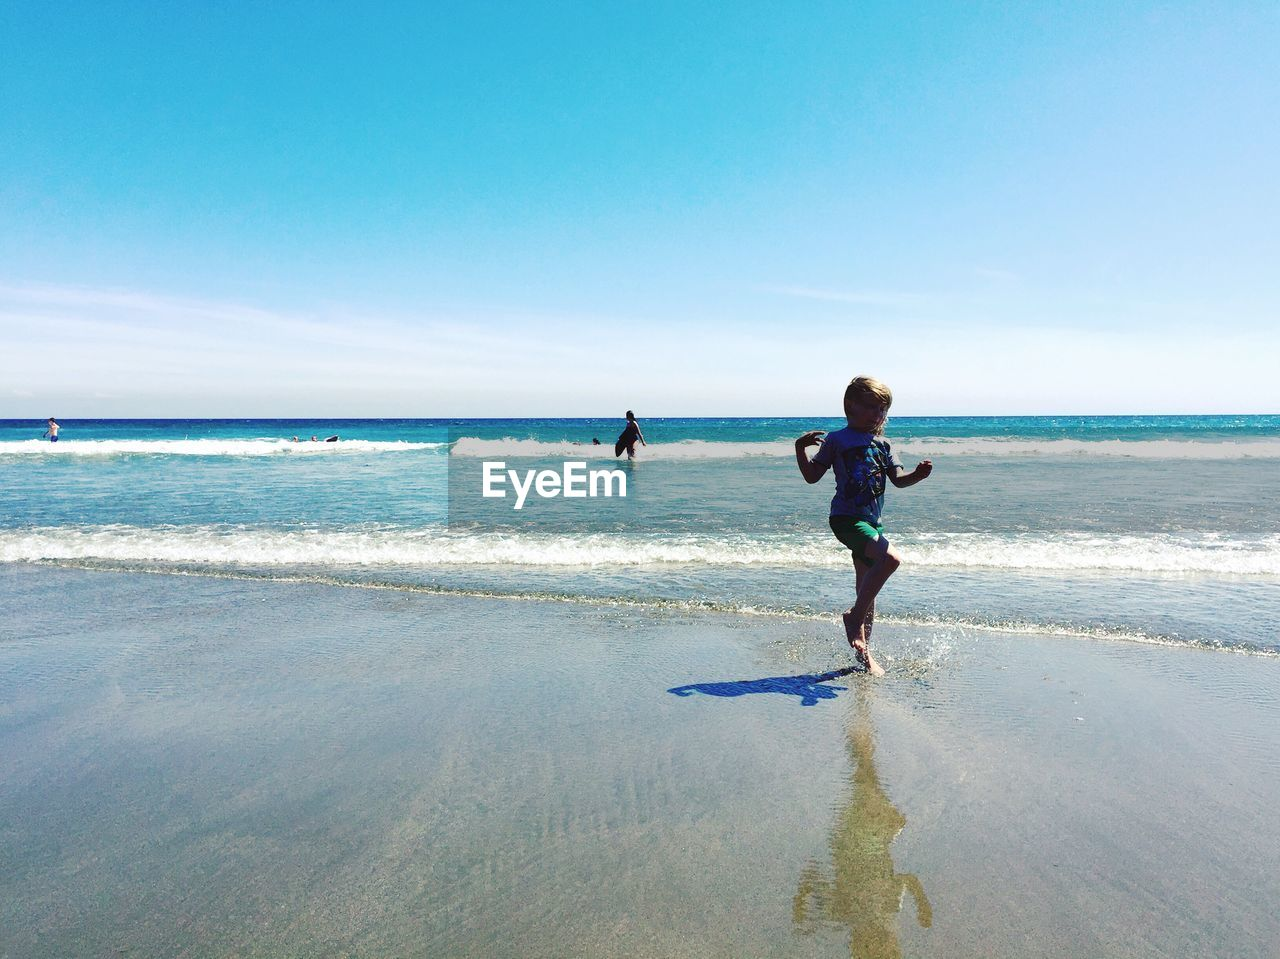 Girl playing on seashore at beach against clear sky